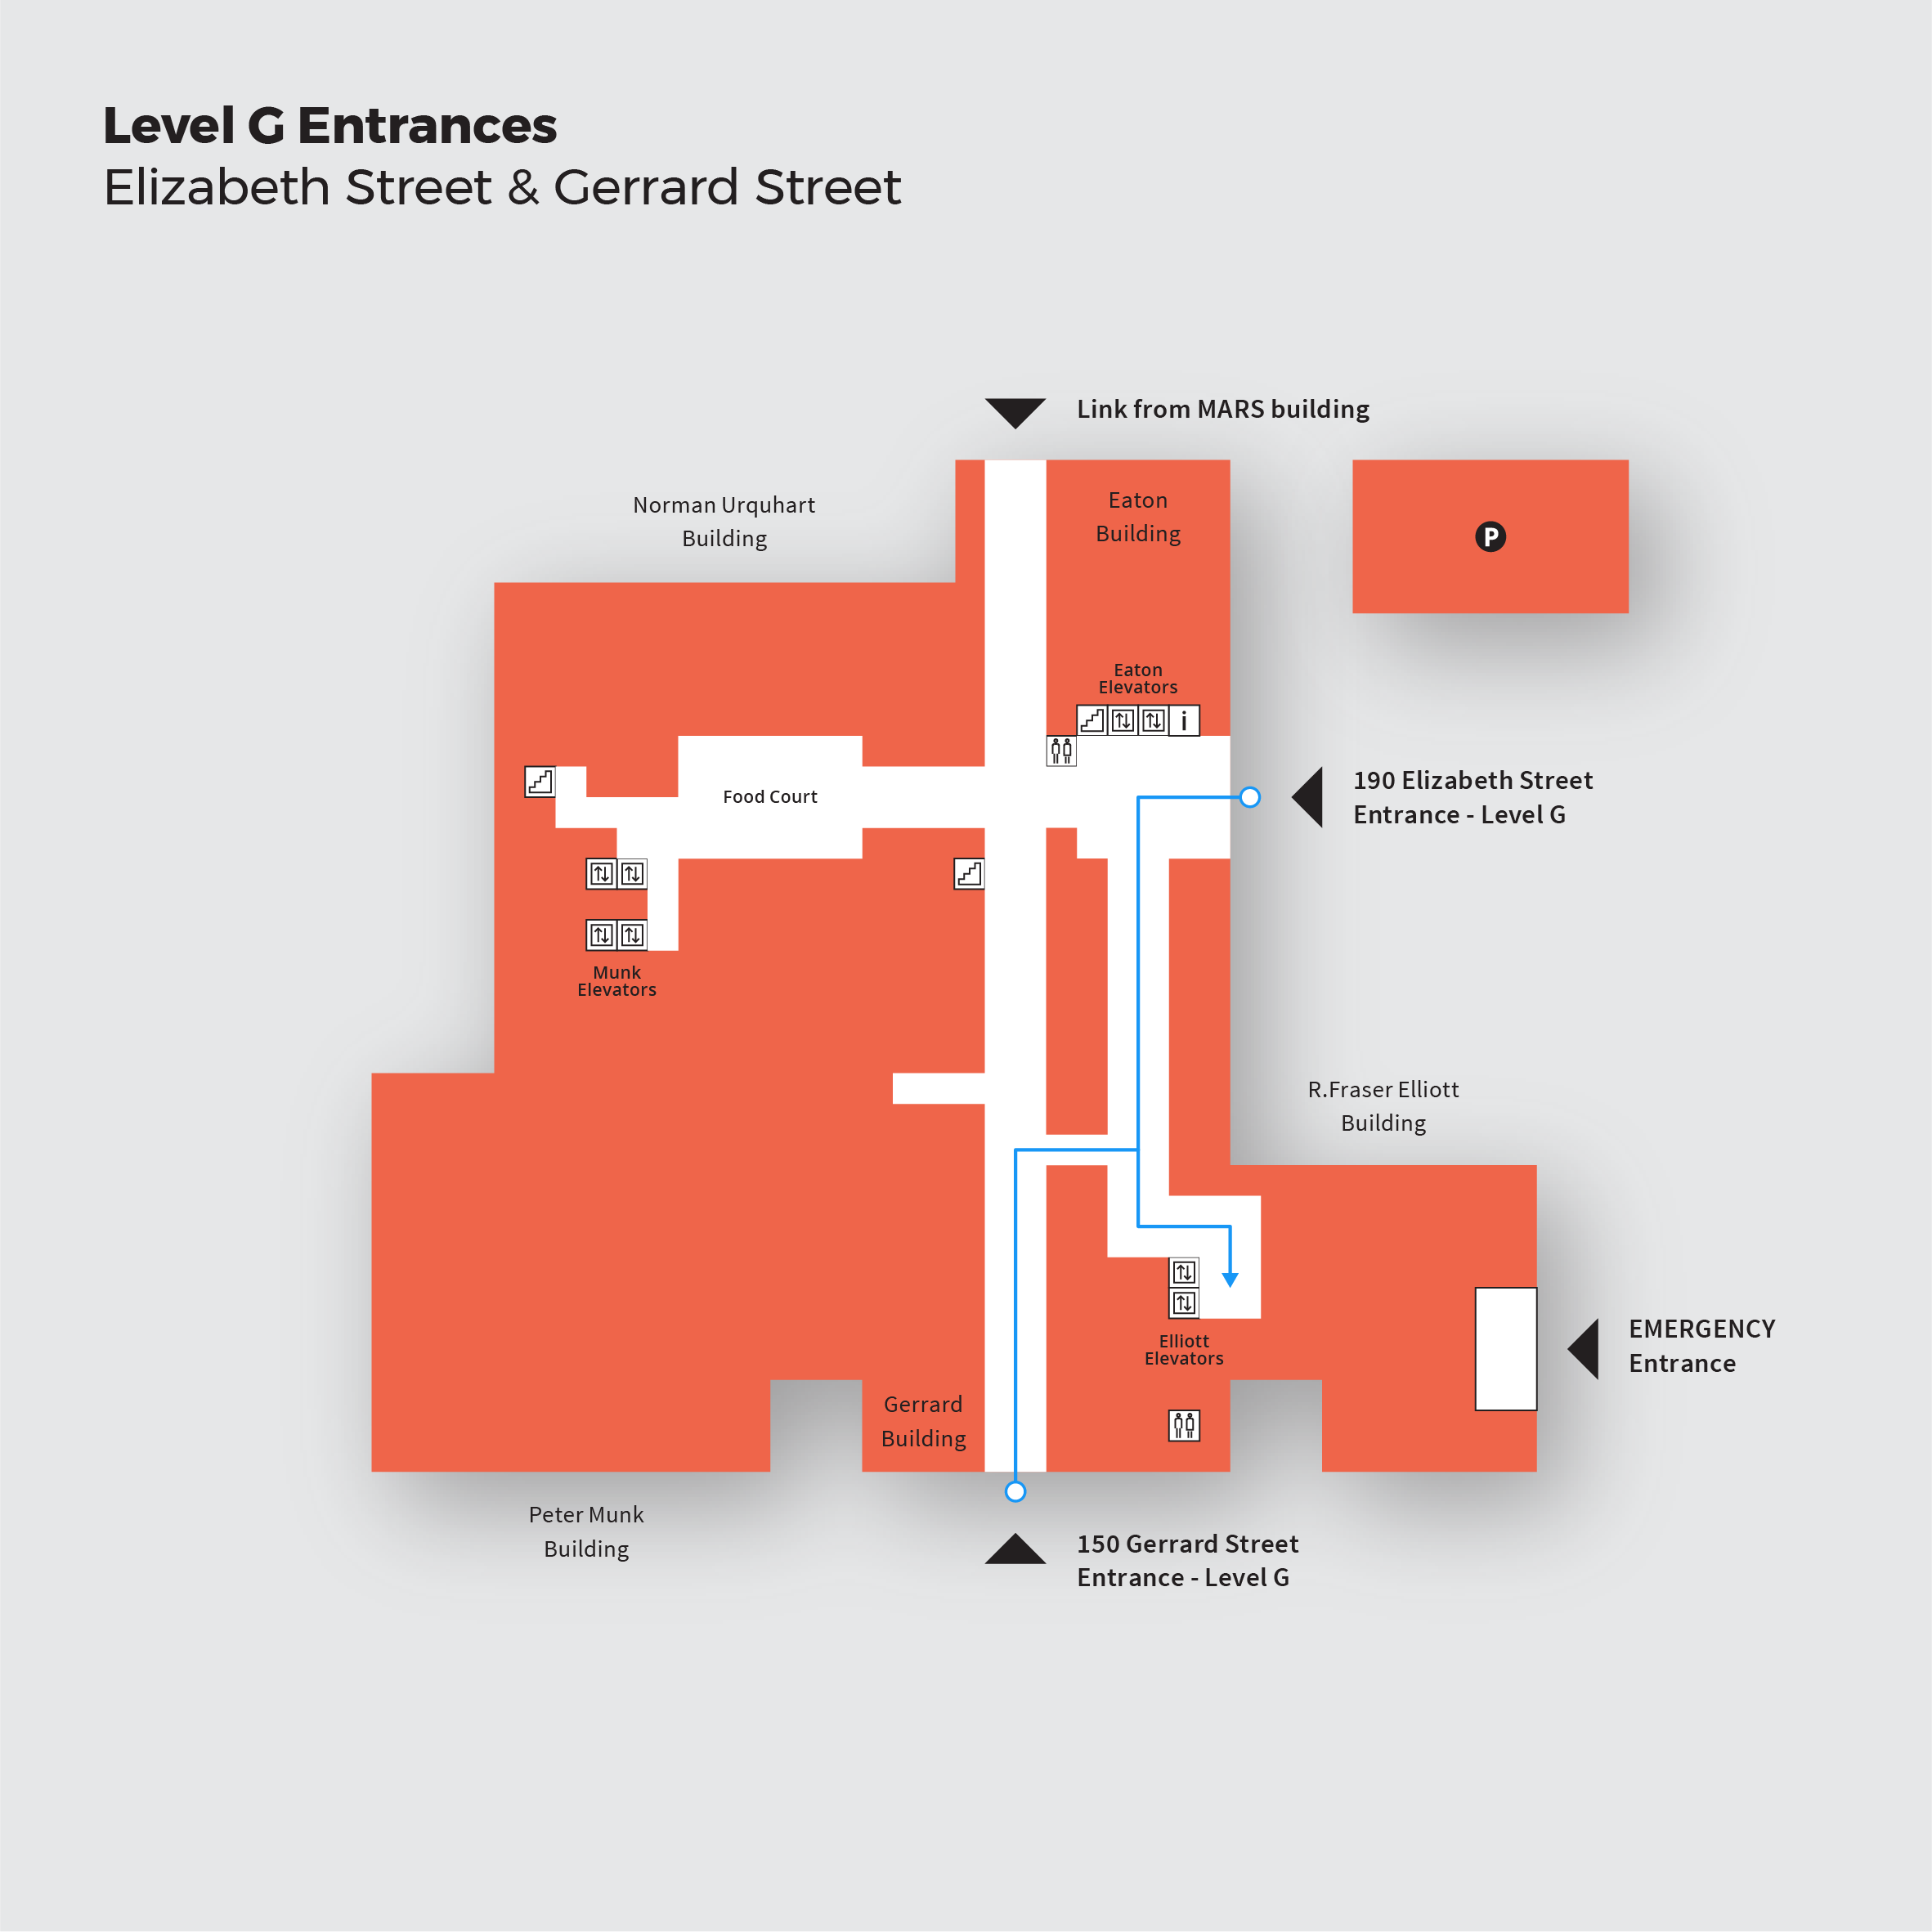 Level G Entrances